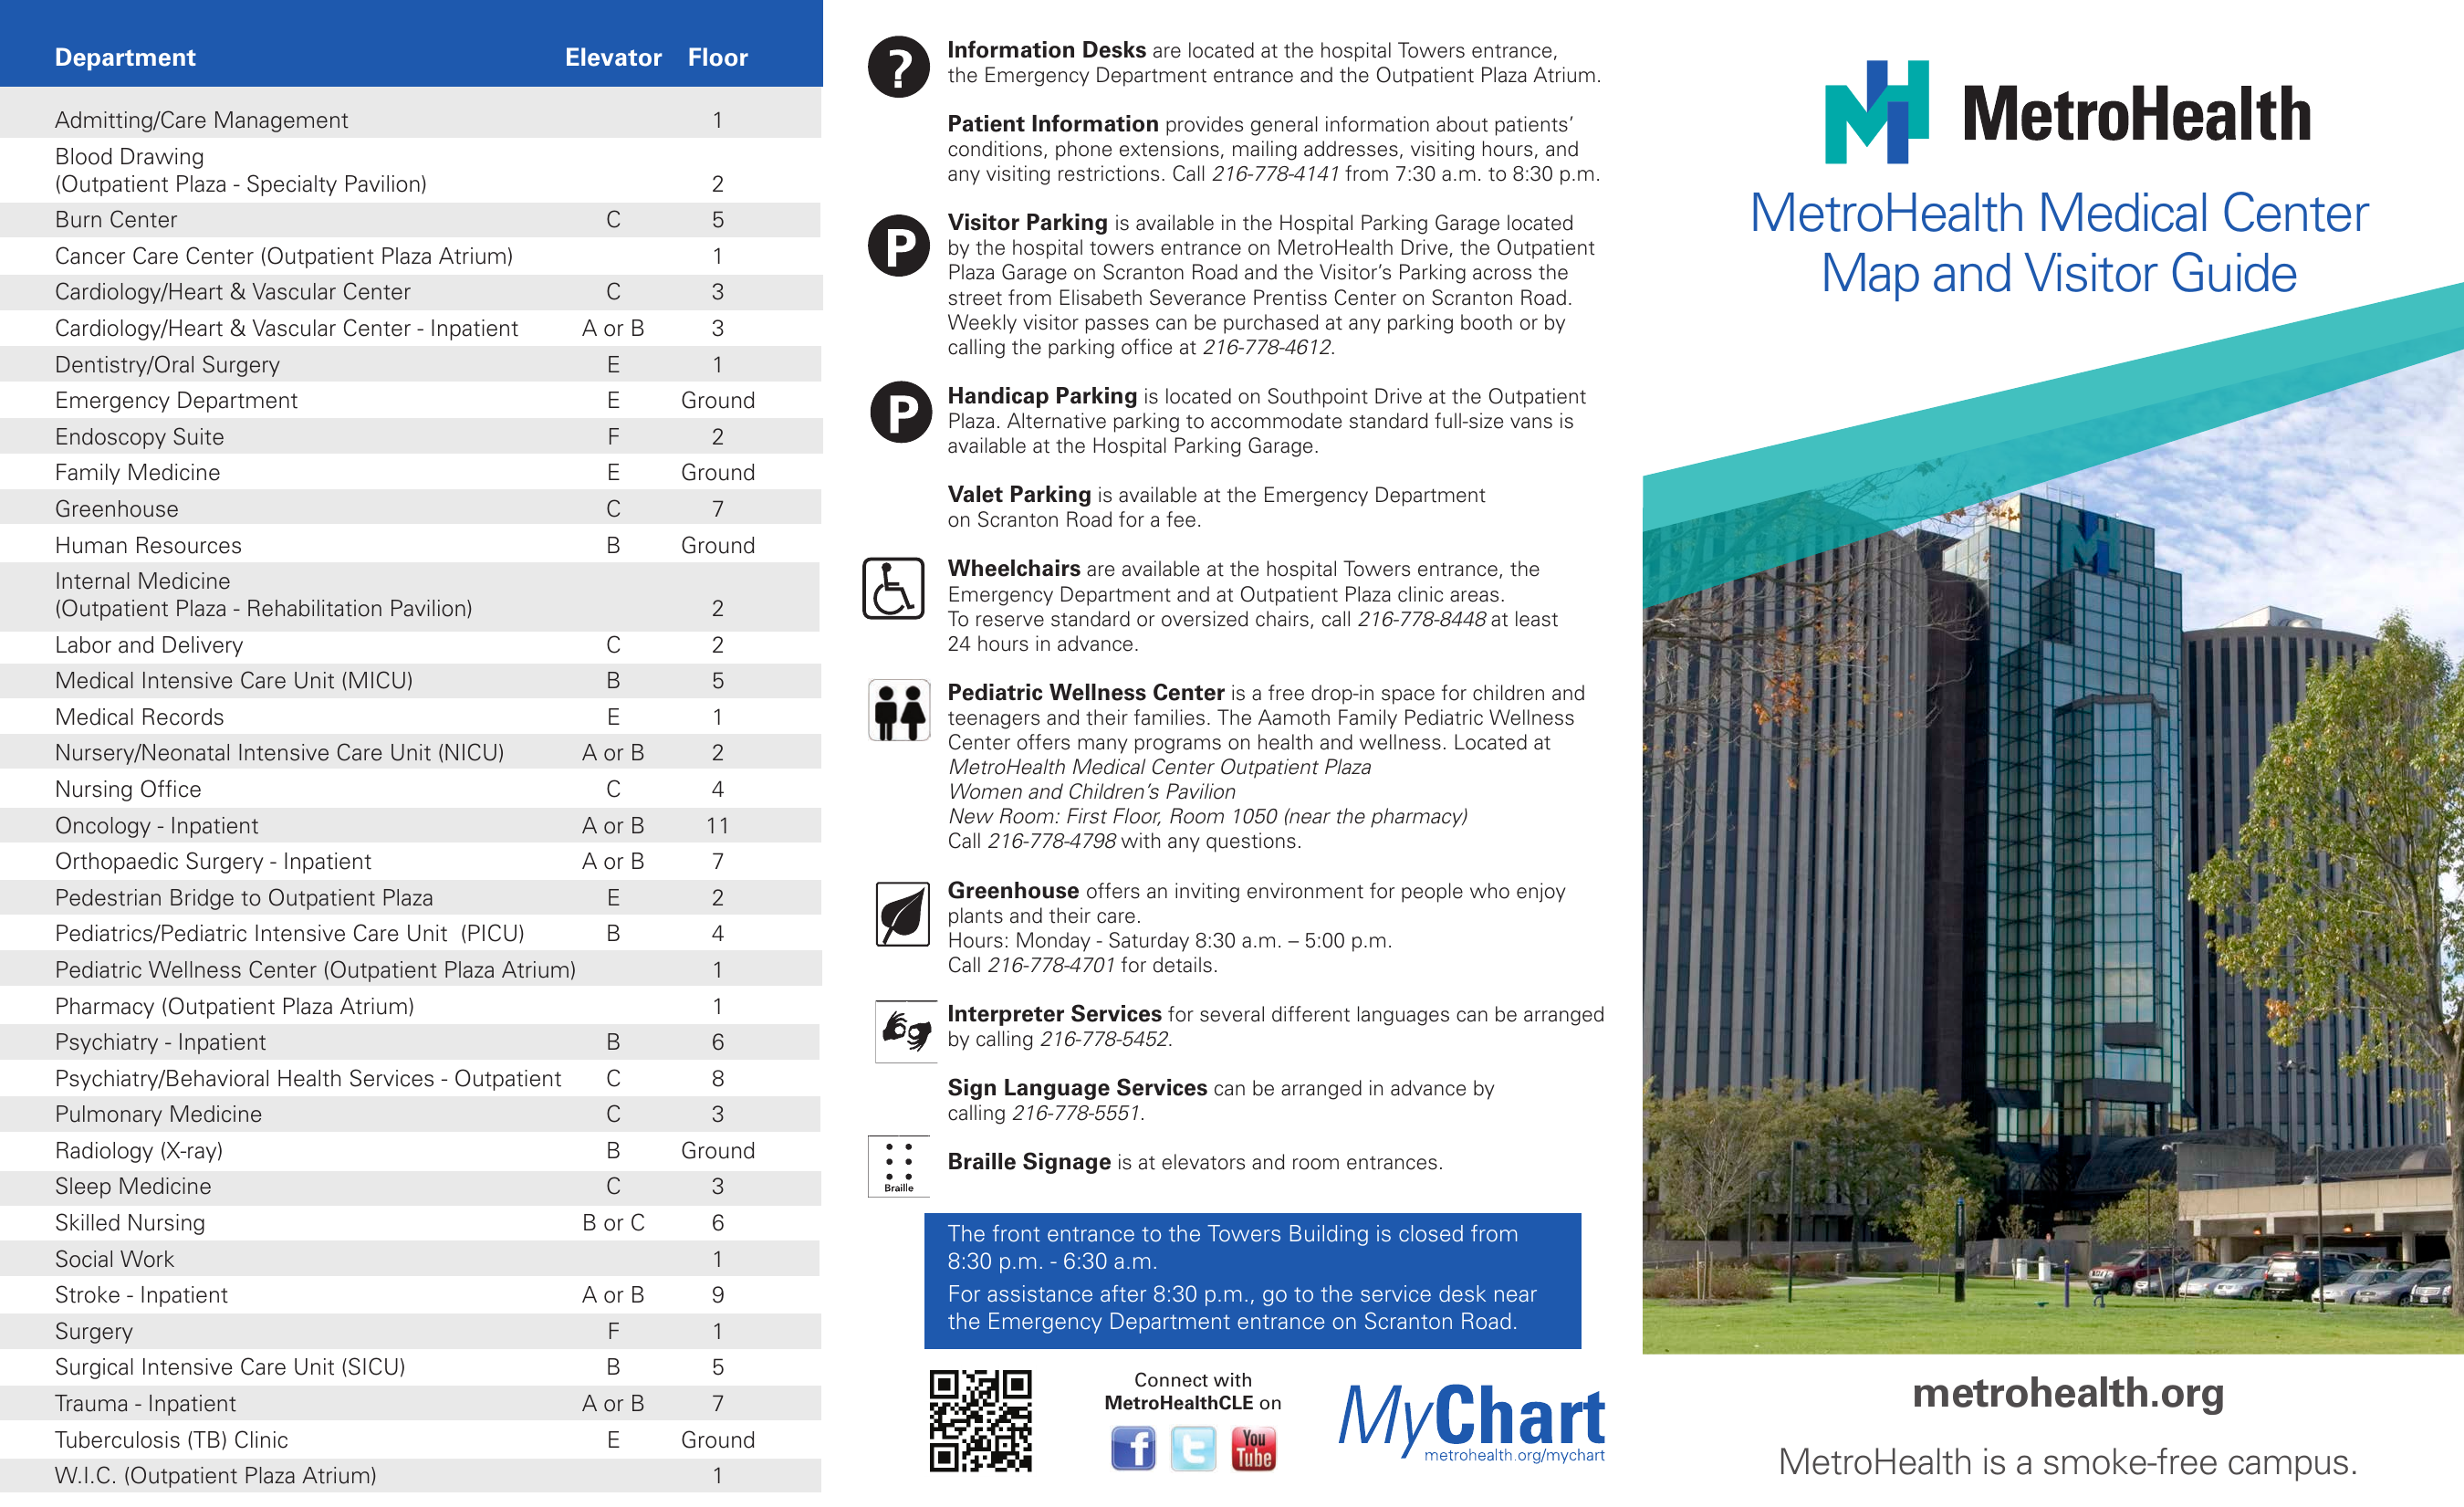 MetroHealth Medical Center Map and Visitor Guide on kaiser permanente campus map, unc health care campus map, metro campus map, westlake campus map, newton-wellesley hospital campus map, nasa campus map, cwru campus map, boston scientific campus map, marymount campus map, mgh campus map, yale campus map, southwest general campus map, general motors campus map, summa campus map, hackensack university medical center campus map, uh campus map, vidant medical center campus map, st vincent's campus map, cleveland clinic campus map, carolinas medical center campus map,